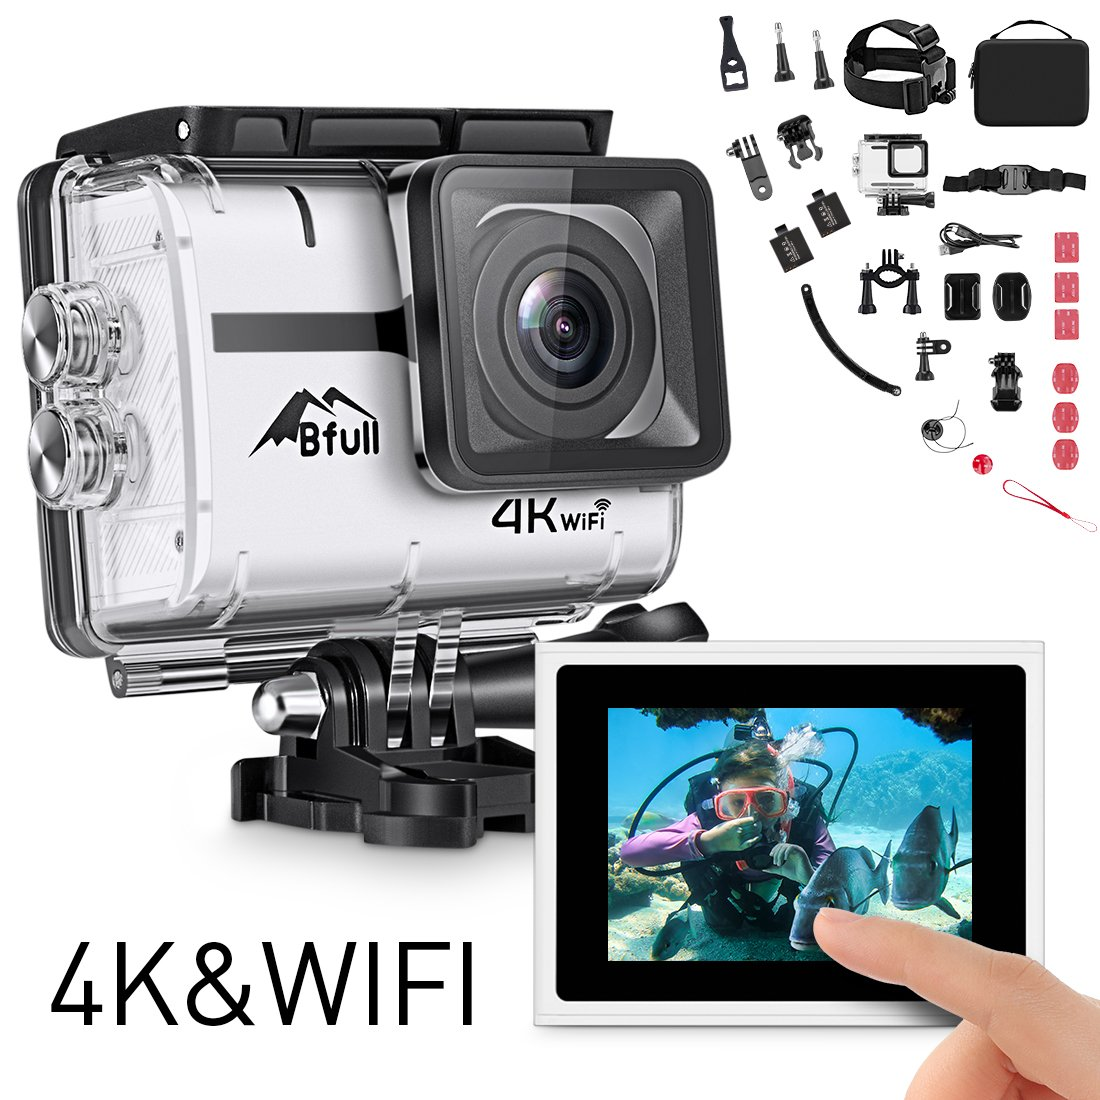 Bfull Action Camera, 4K 16MP Touchscreen Soprts Camera WIFI 170°Wide Angle Len with SONY Sensor Full HD Waterproof 30m Underwater DV Camcorder with 2 Rechargeable Batteries and Mounting Accessory Kits